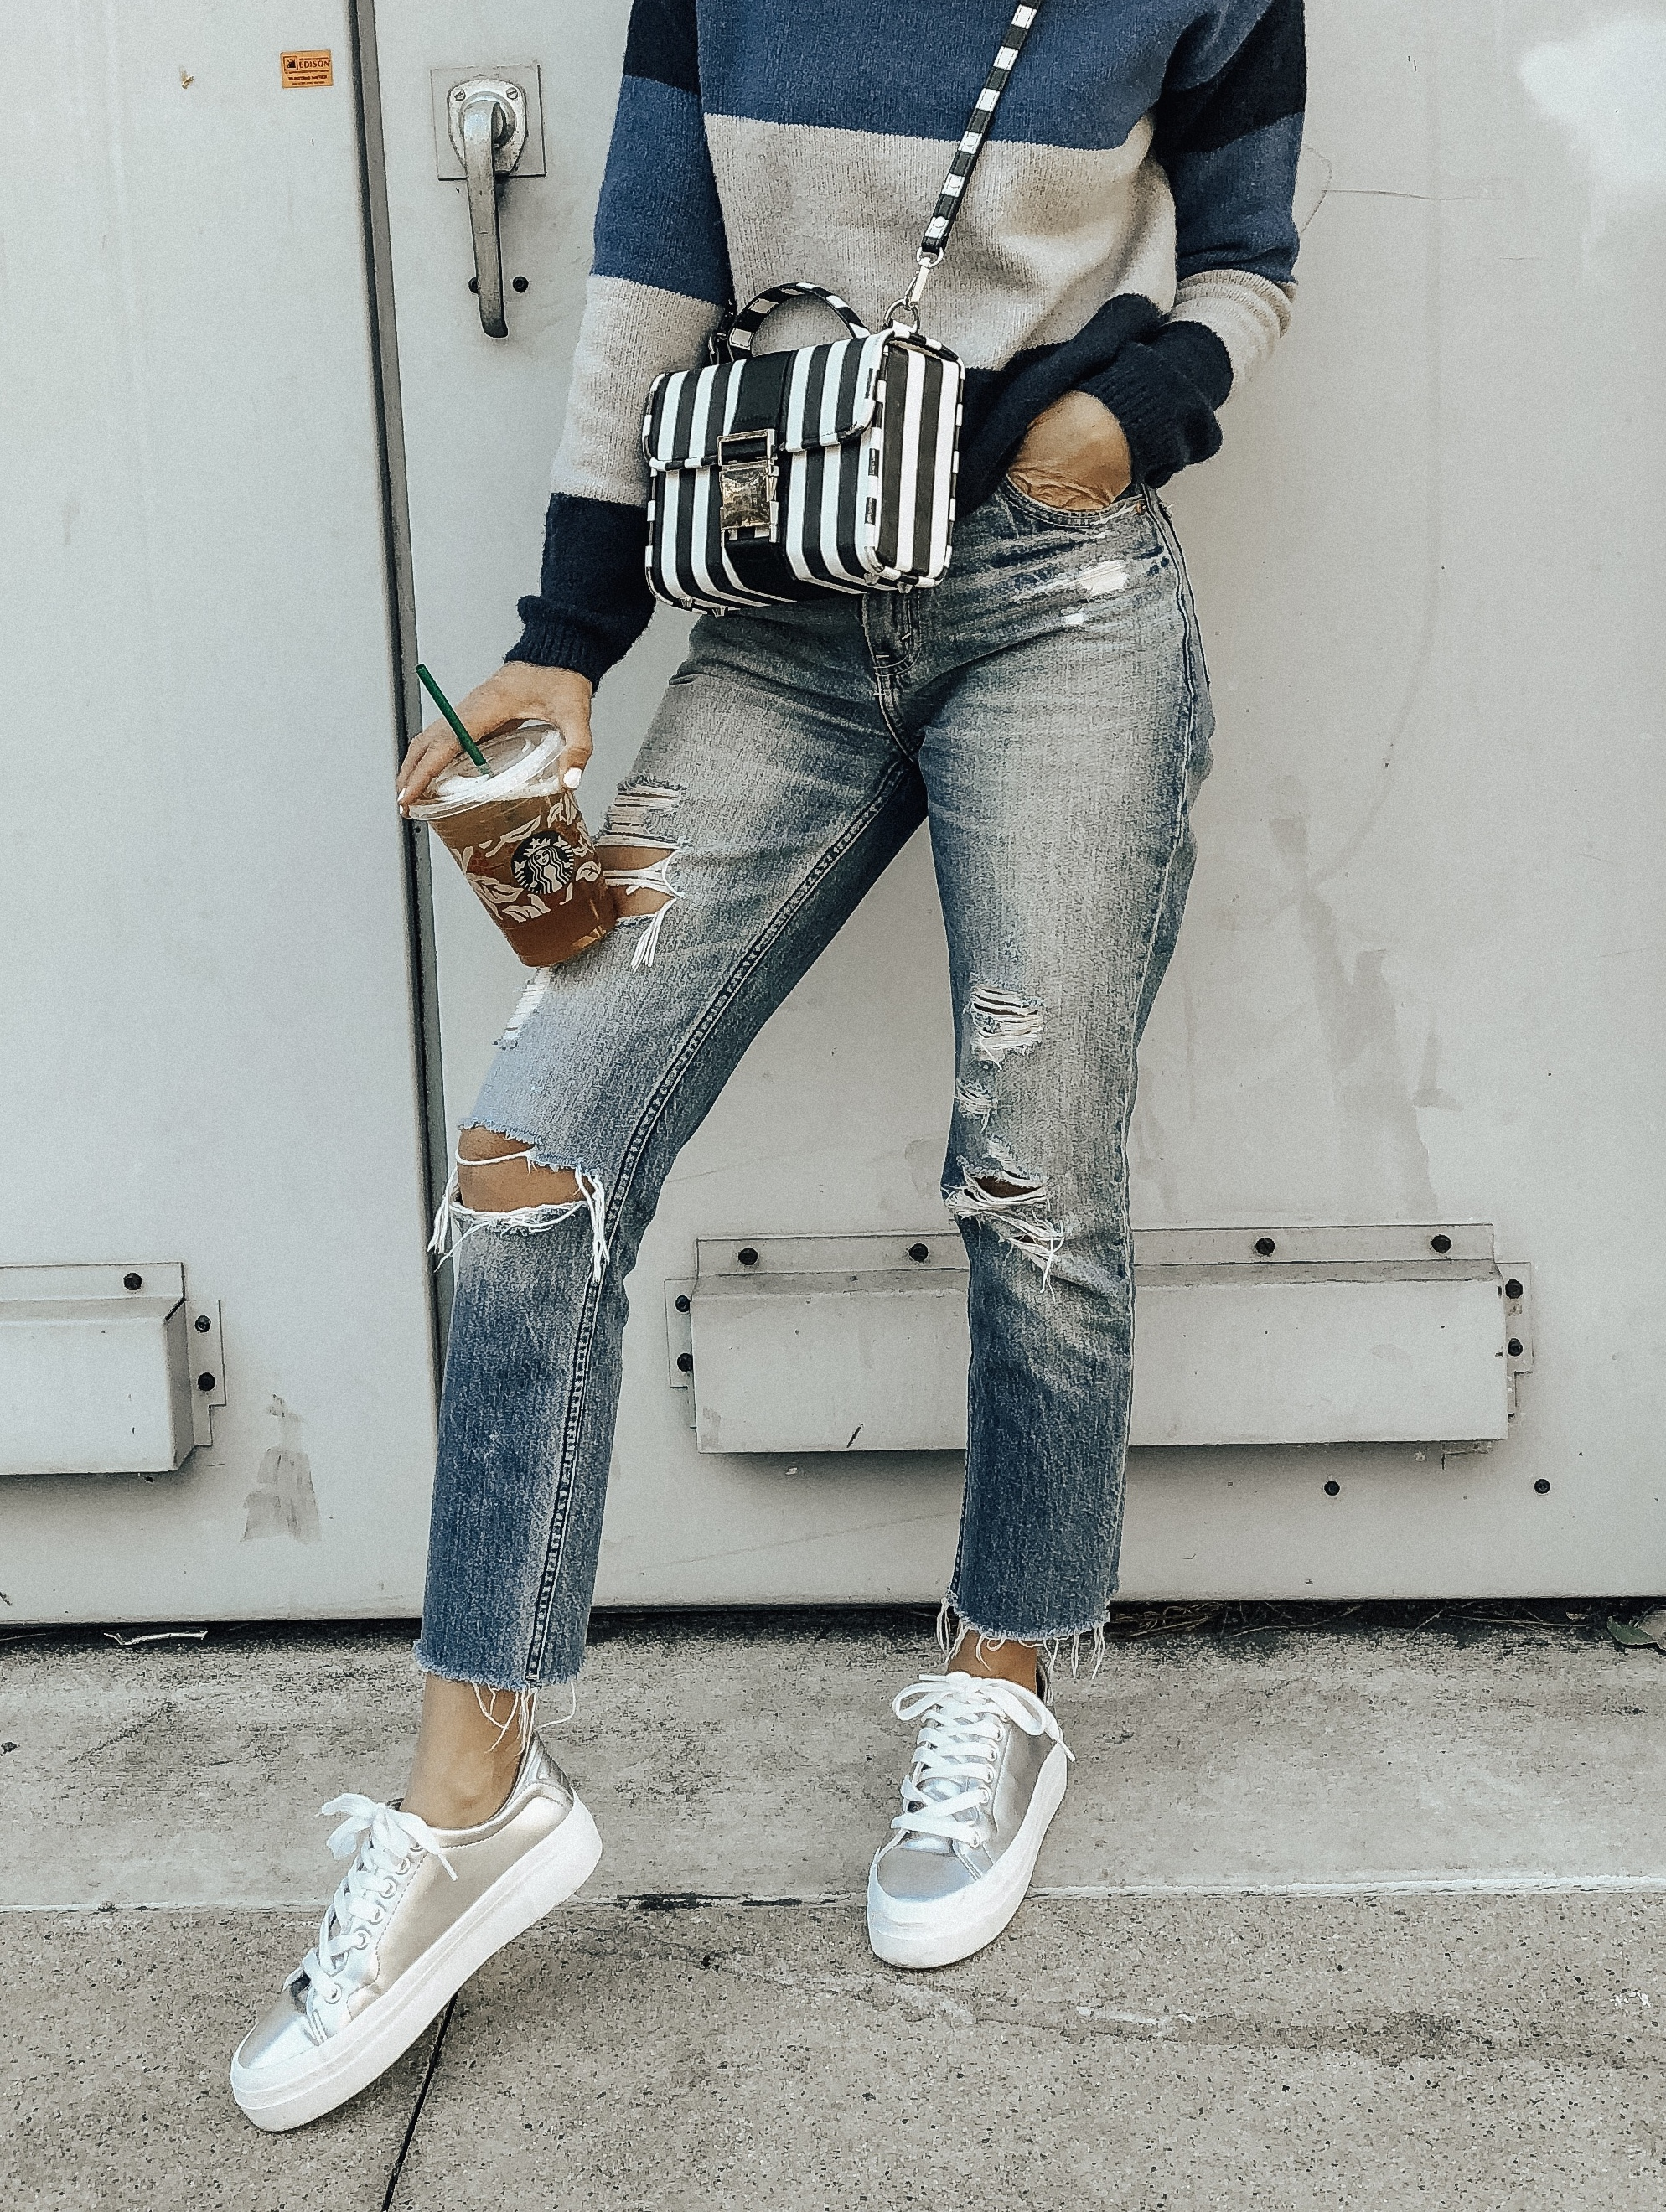 NOVEMBER TOP 10- Jaclyn De Leon Style + high rise mom jeans + abercrombie denim + distressed high rise jeans + casual street style + platform sneakers + mom style + starbucks + striped sweater + what to buy this season + top selling items